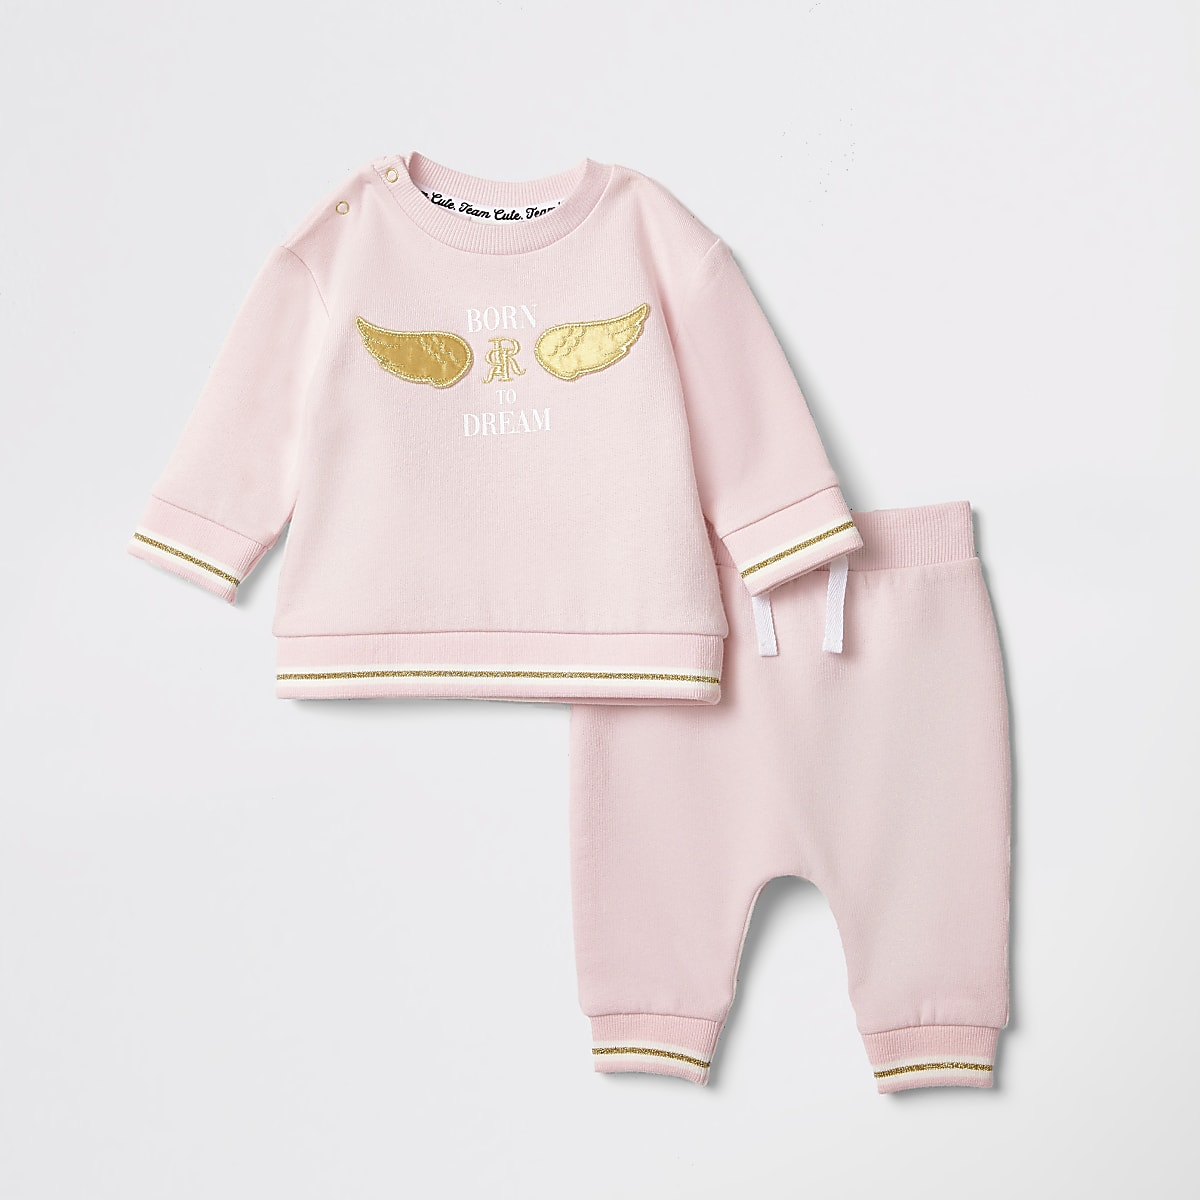 Babypink 'born to dream' sweatshirt outfit